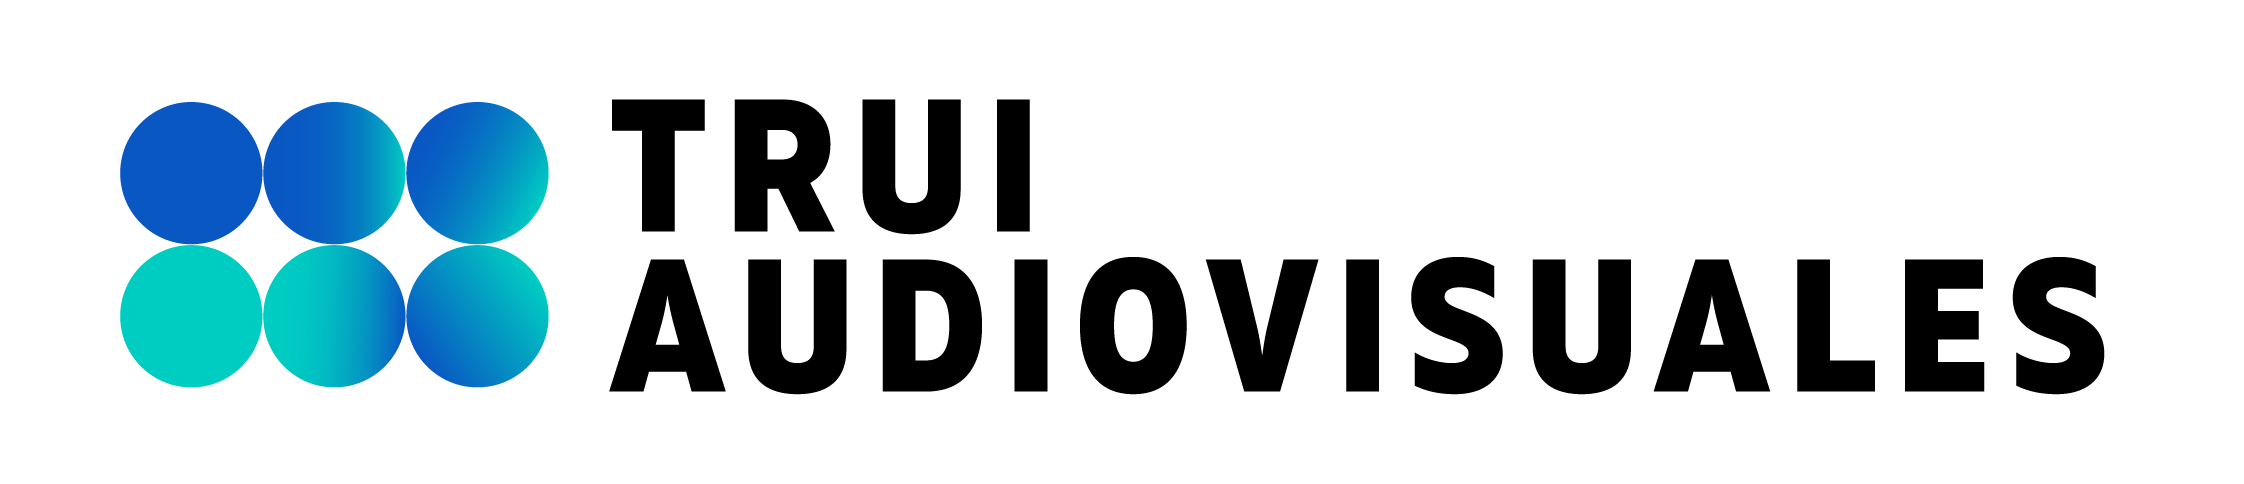 Trui Audiovisuales